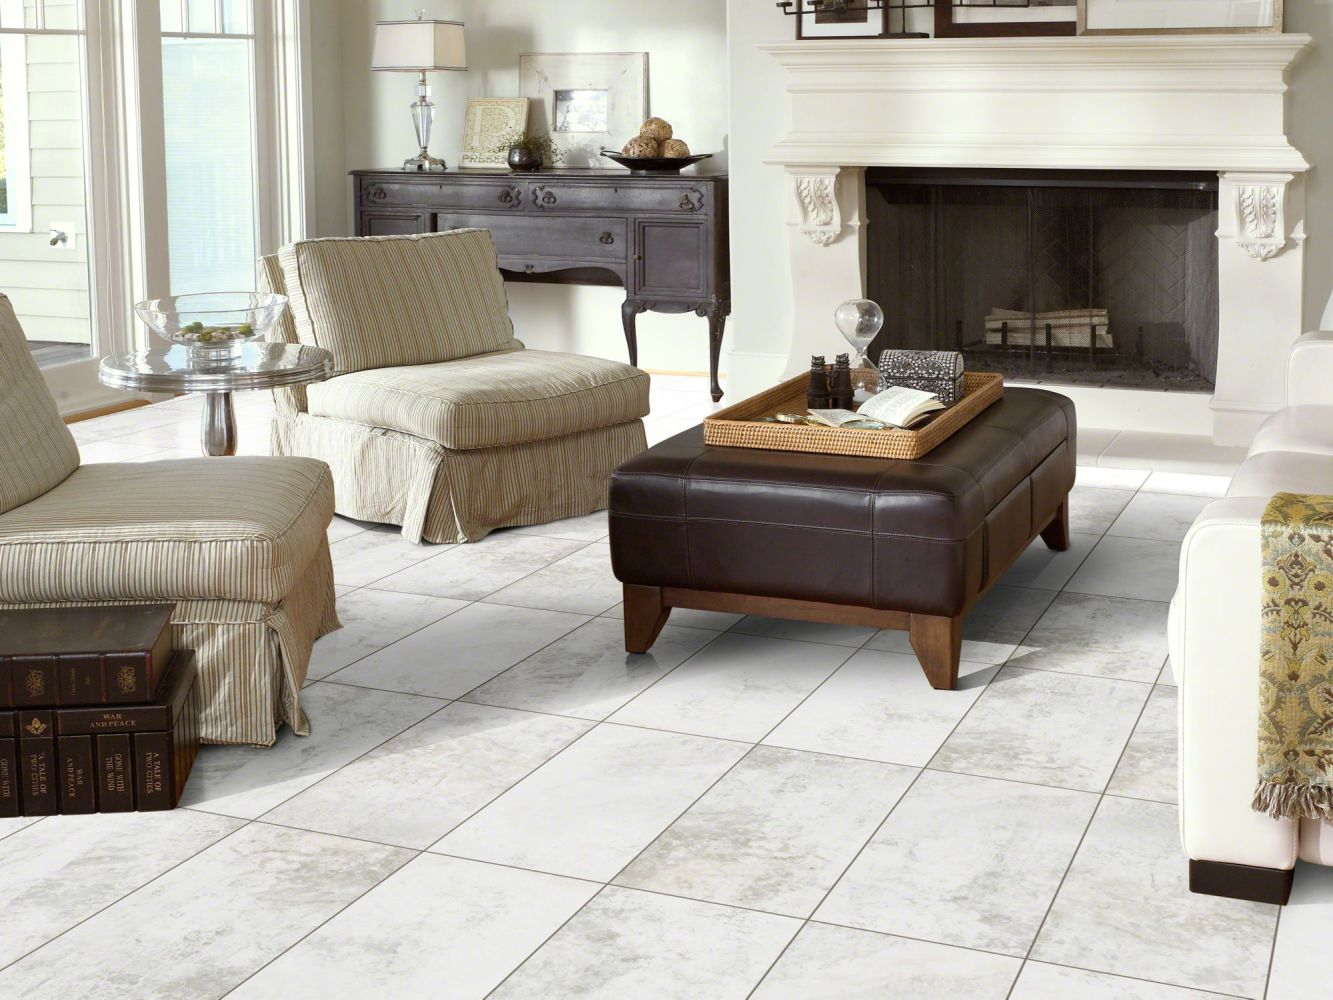 Shaw Floors Resilient Residential Fairmount Ti 20 Sweetbriar 00547_0414V